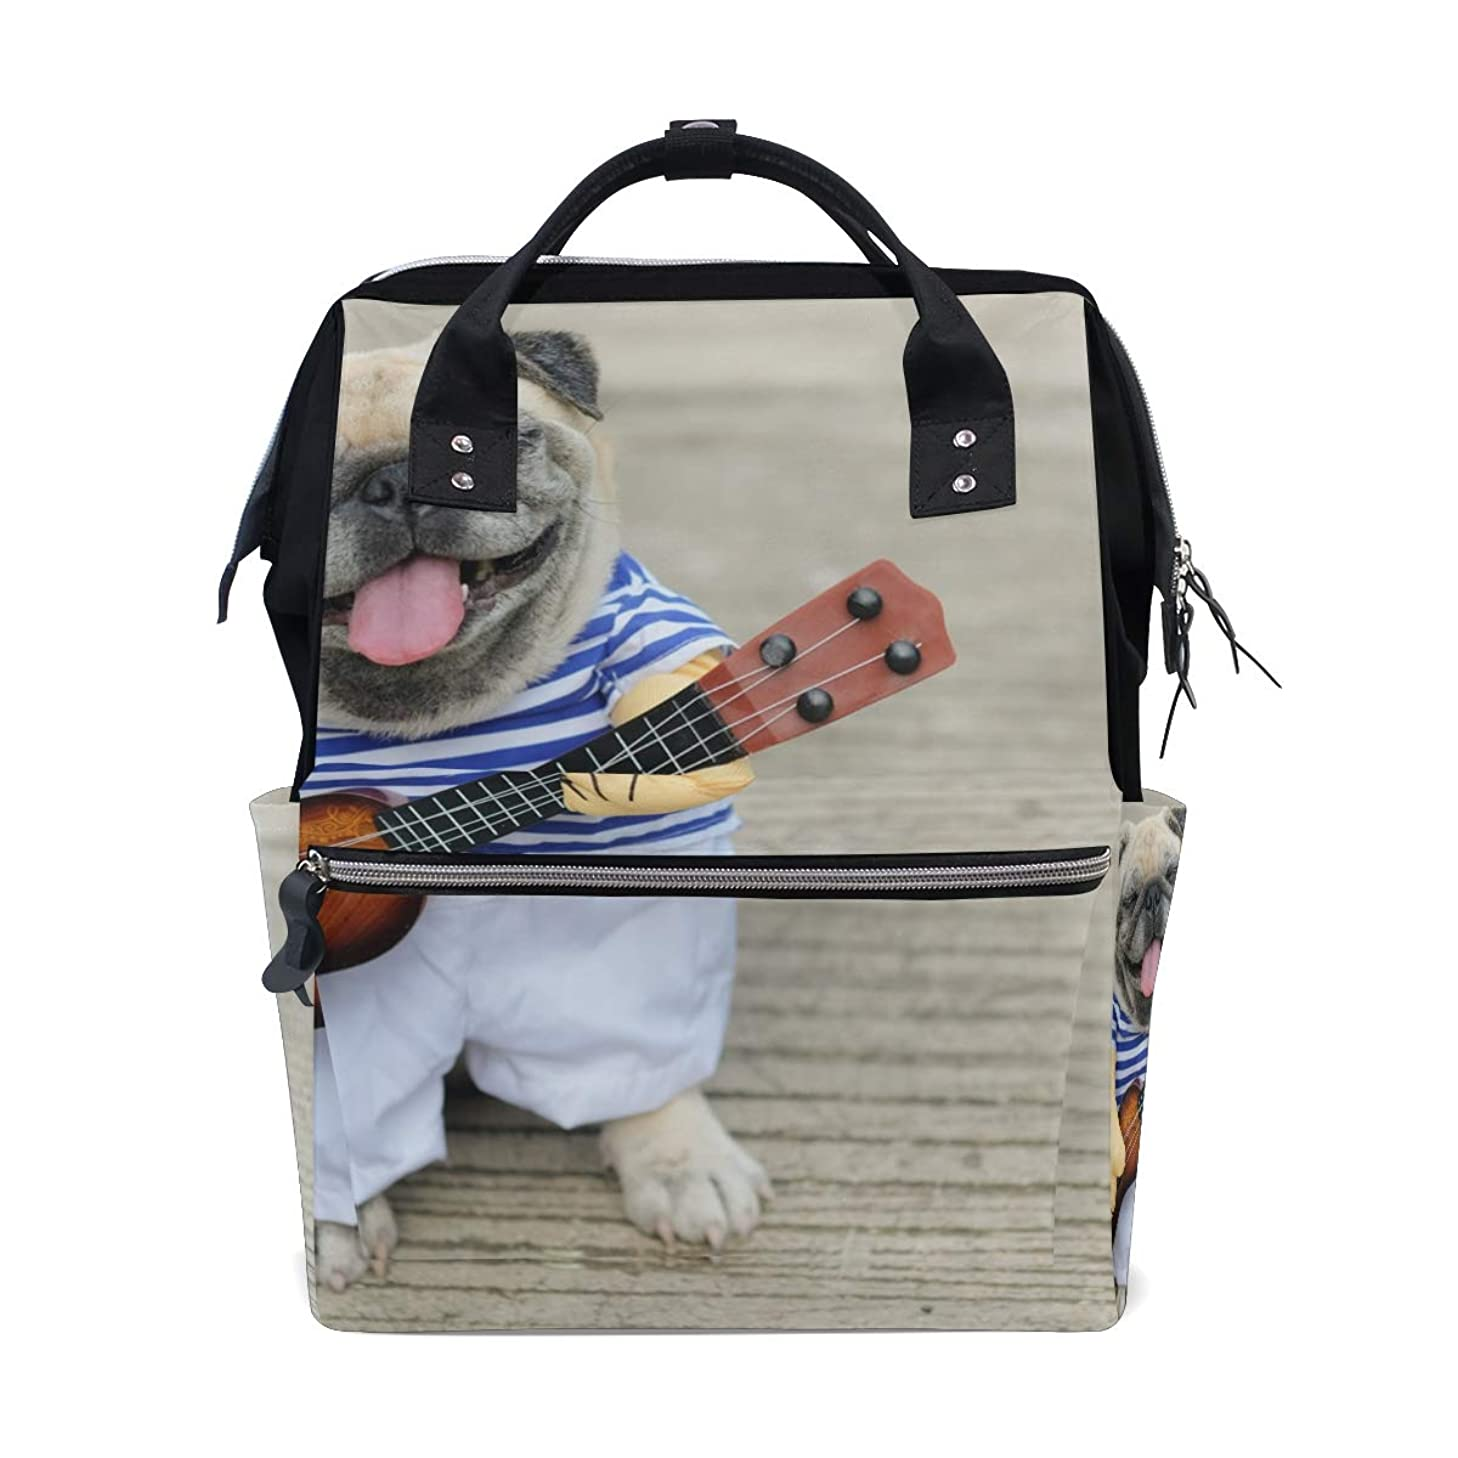 Cute Dog Playing Guitar School Backpack Large Capacity Mummy Bags Laptop Handbag Casual Travel Rucksack Satchel For Women Men Adult Teen Children